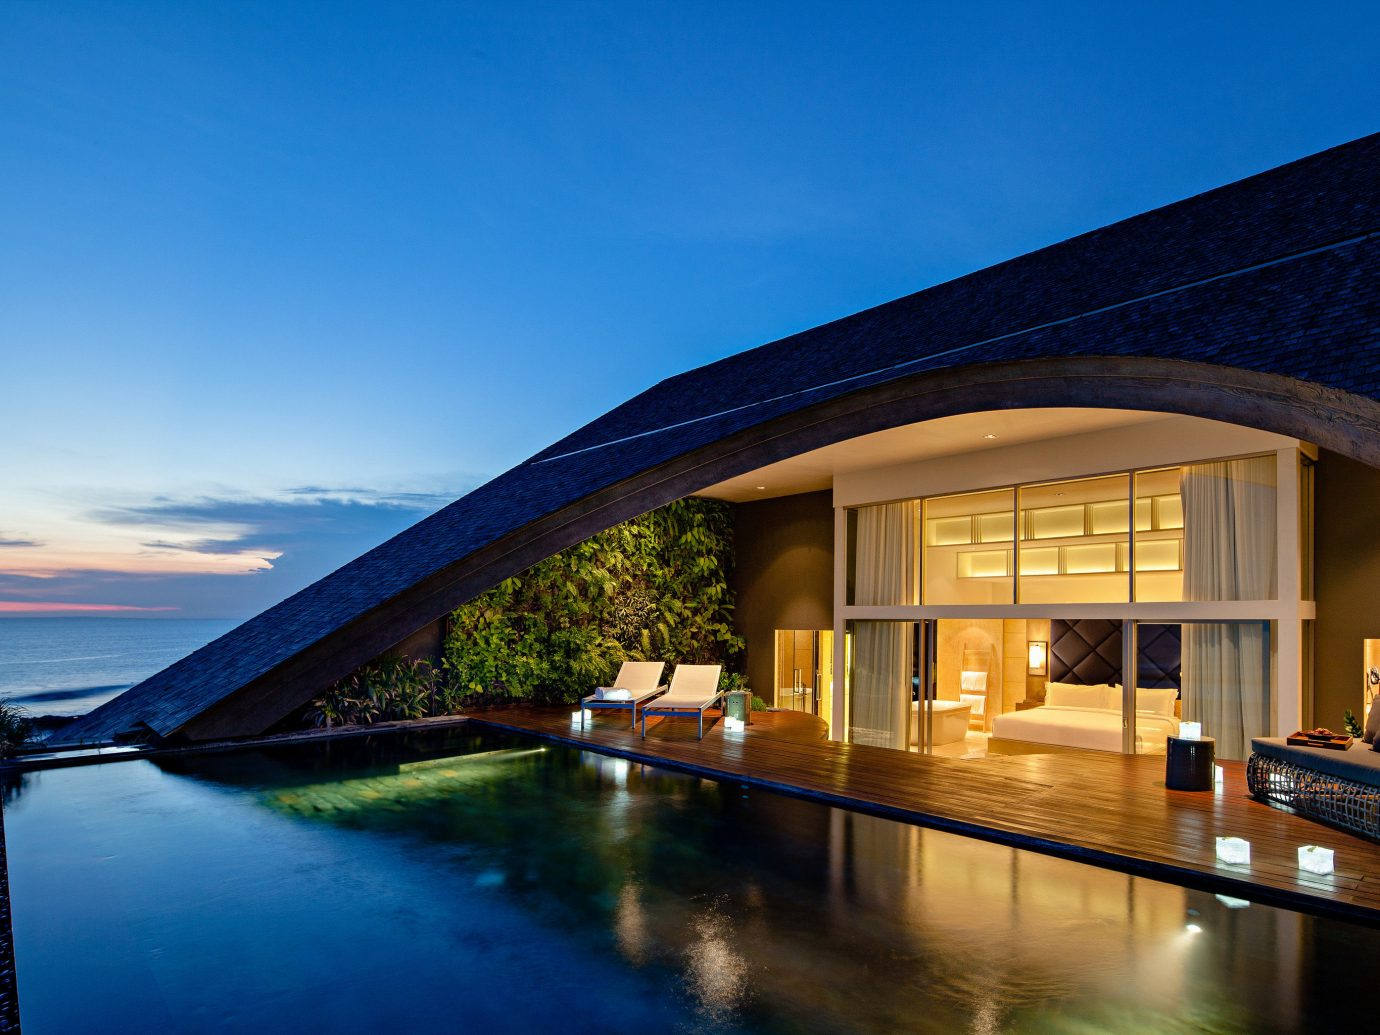 Spring Trips Trip Ideas reflection sky property Architecture water house real estate estate home lighting evening building Villa Resort roof facade hotel Sea